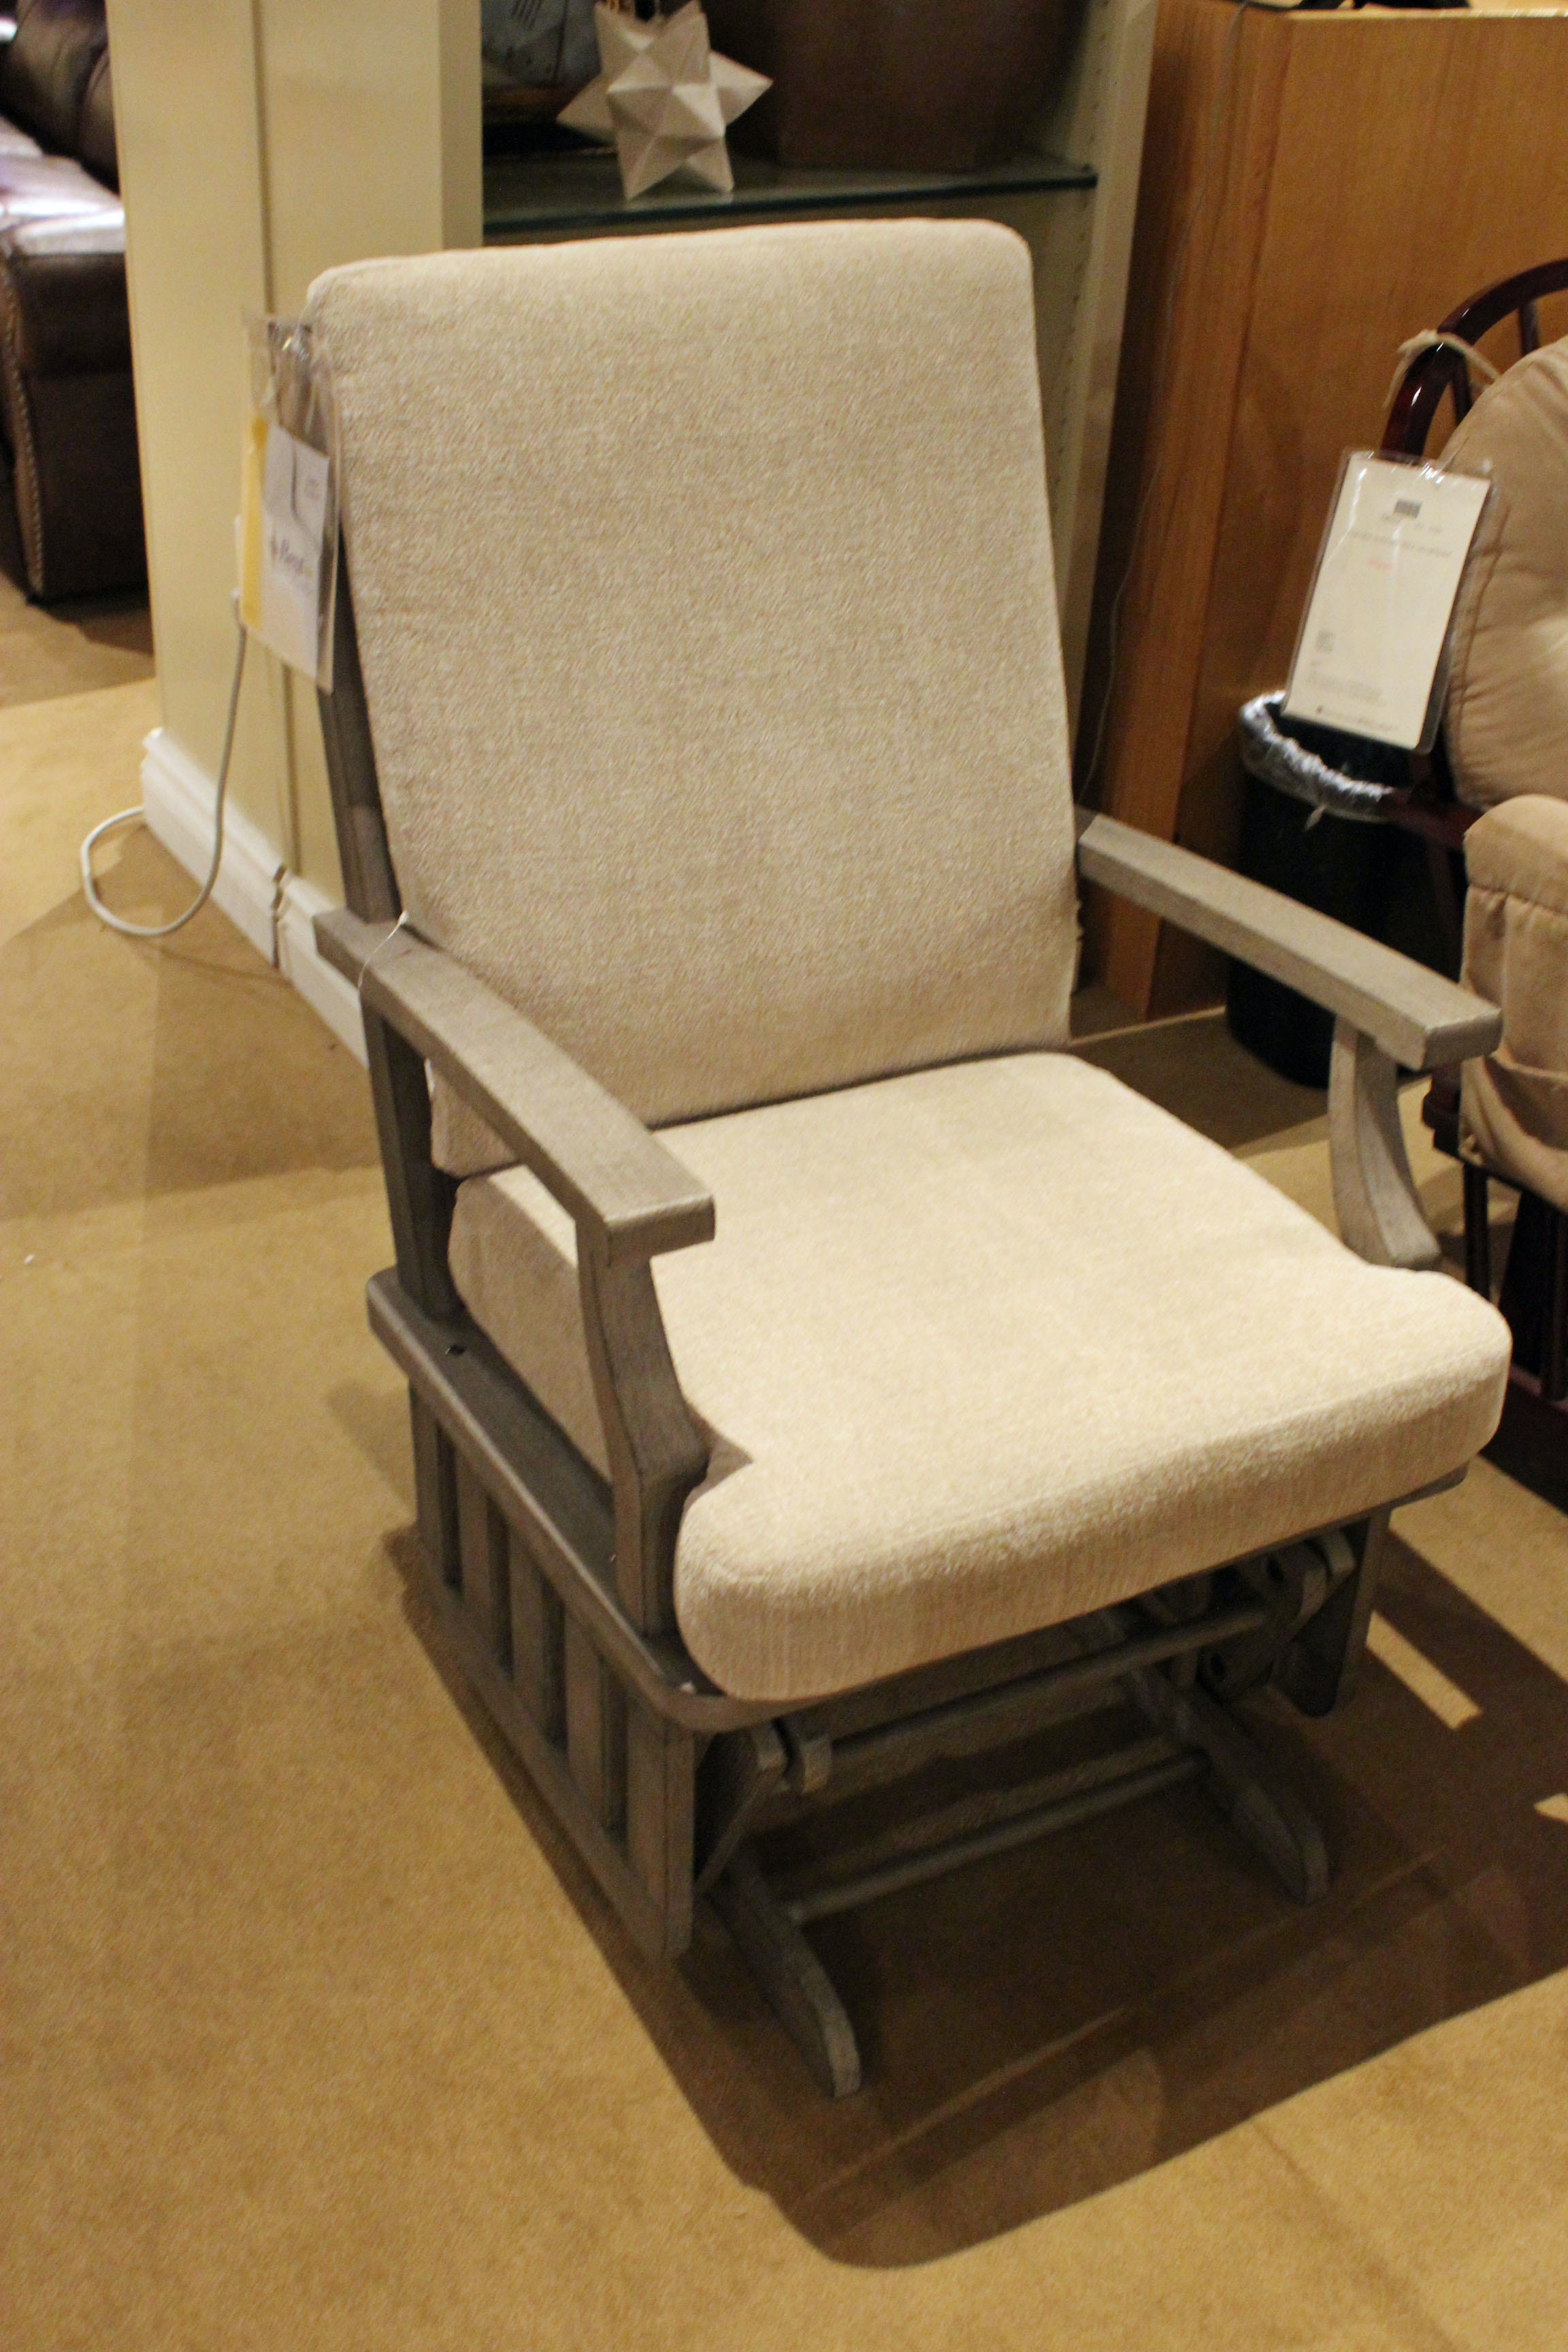 bedroom chairs 2 person camping chair clearance naturwood home furnishings sacramento ca 115078